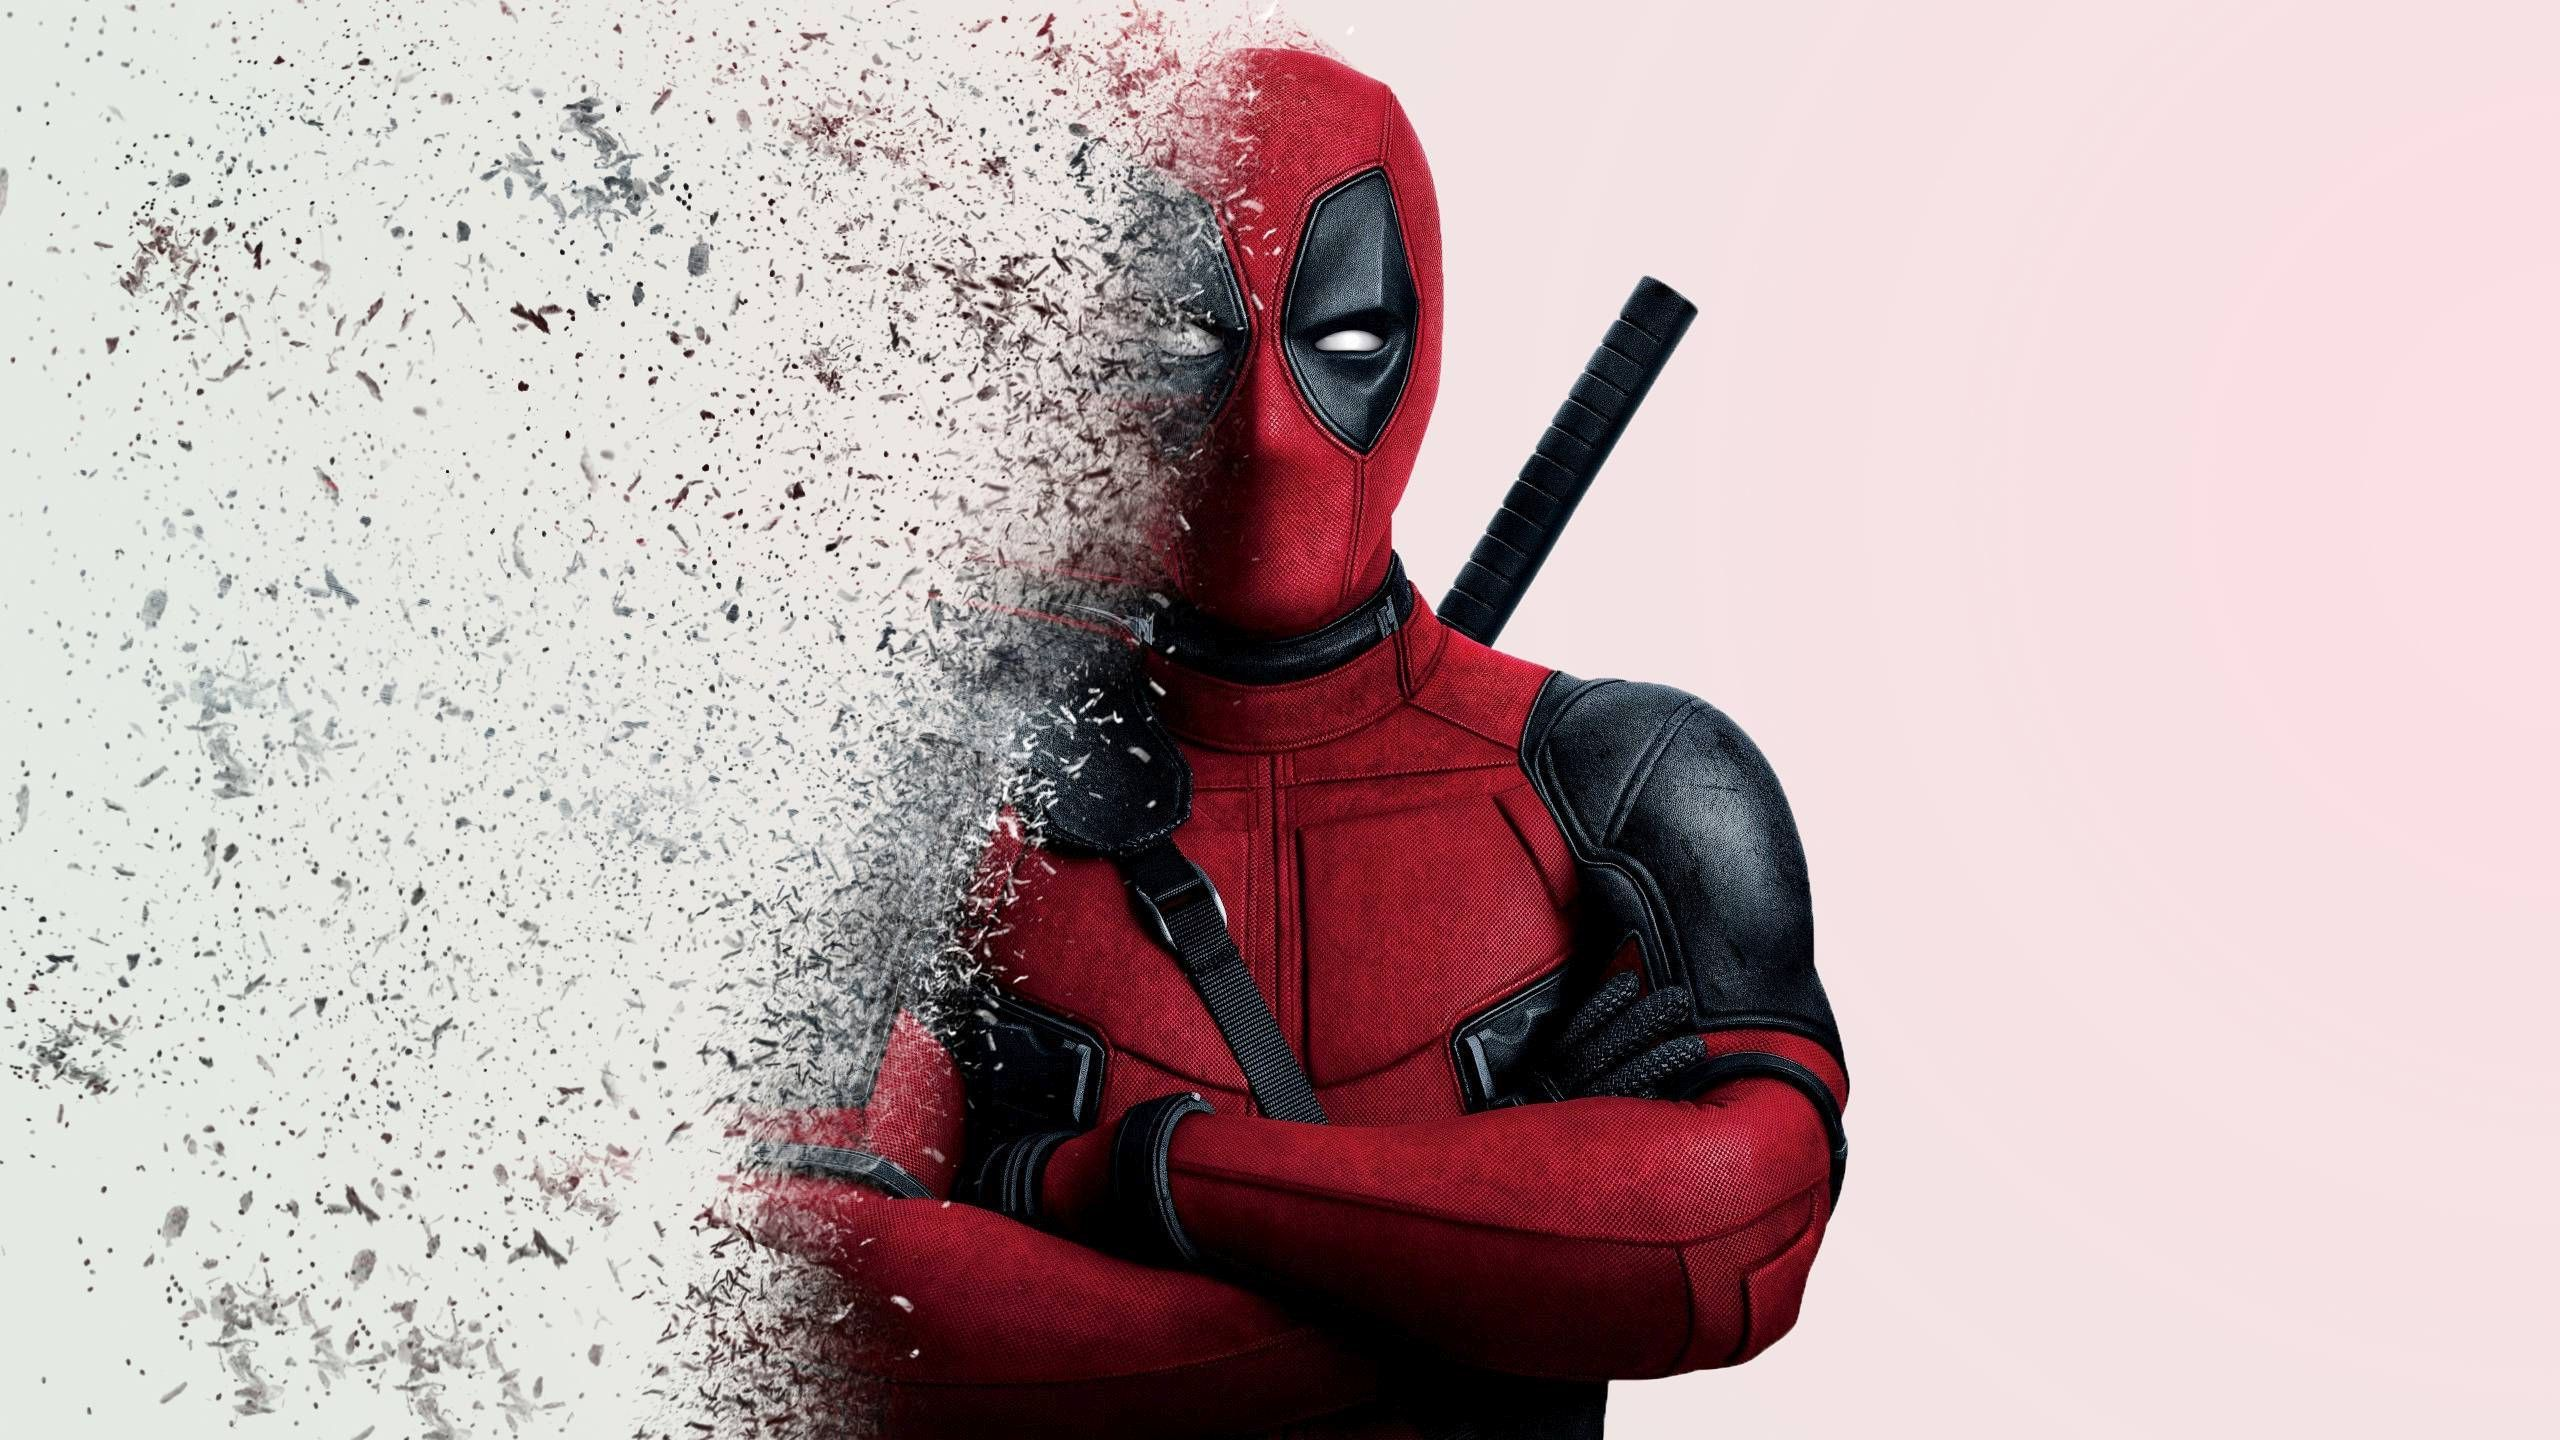 Deadpool Wallpaper For Mobile Phone Tablet Desktop Computer And Other Devices Hd And 4k Wallpapers In 2021 Deadpool Wallpaper Deadpool Wallpaper Desktop Deadpool Deadpool hd wallpaper mobile